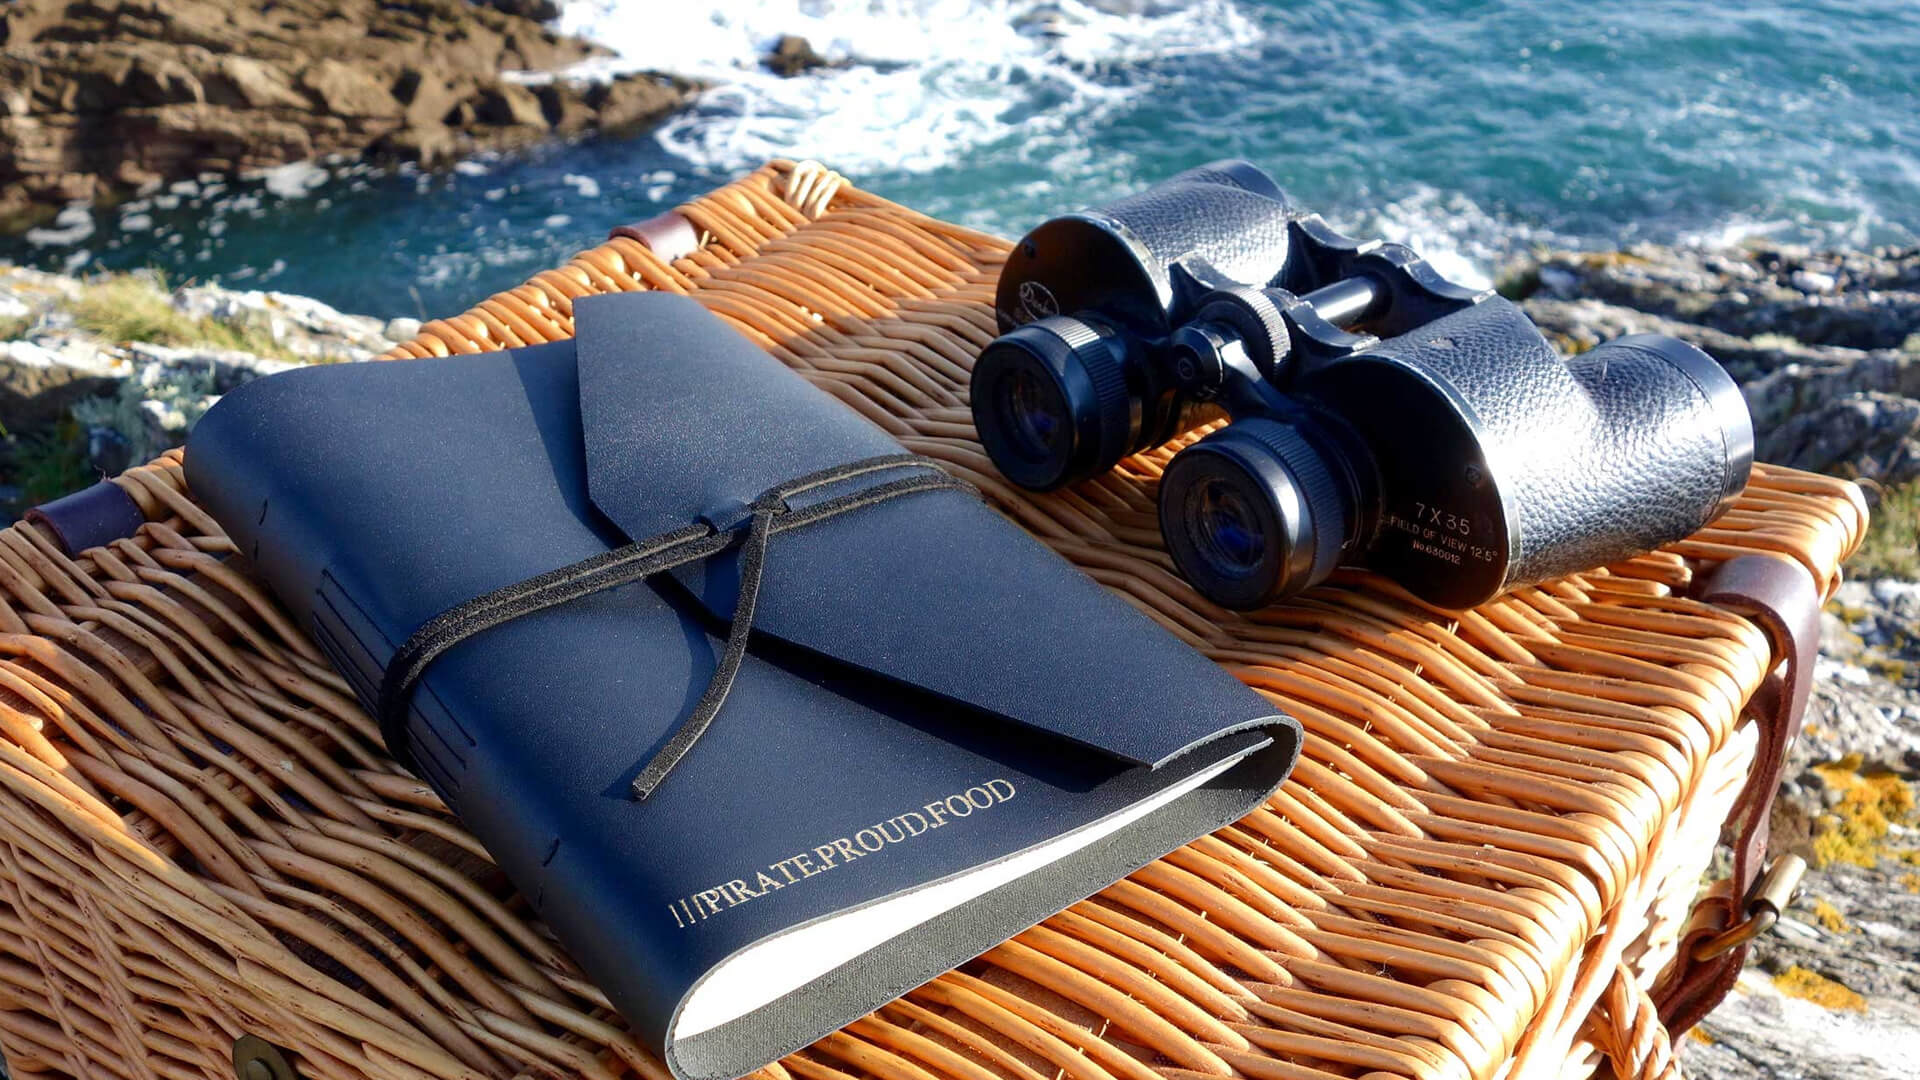 Binoculars and personalised travel diary on top of a basket with a what 3 words address